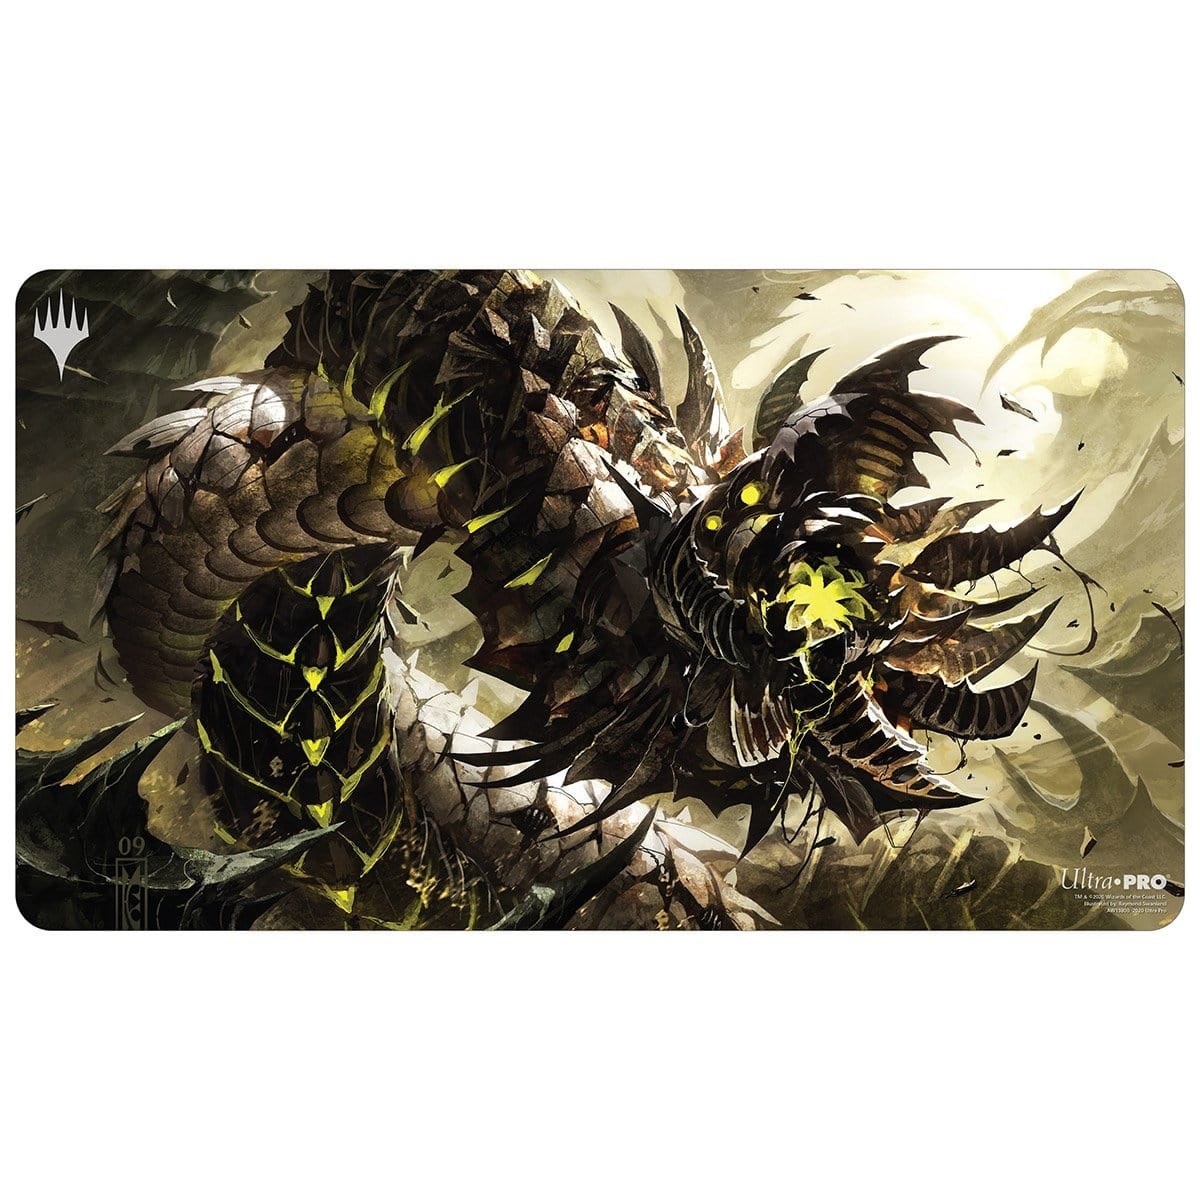 Wurmcoil Engine Playmat